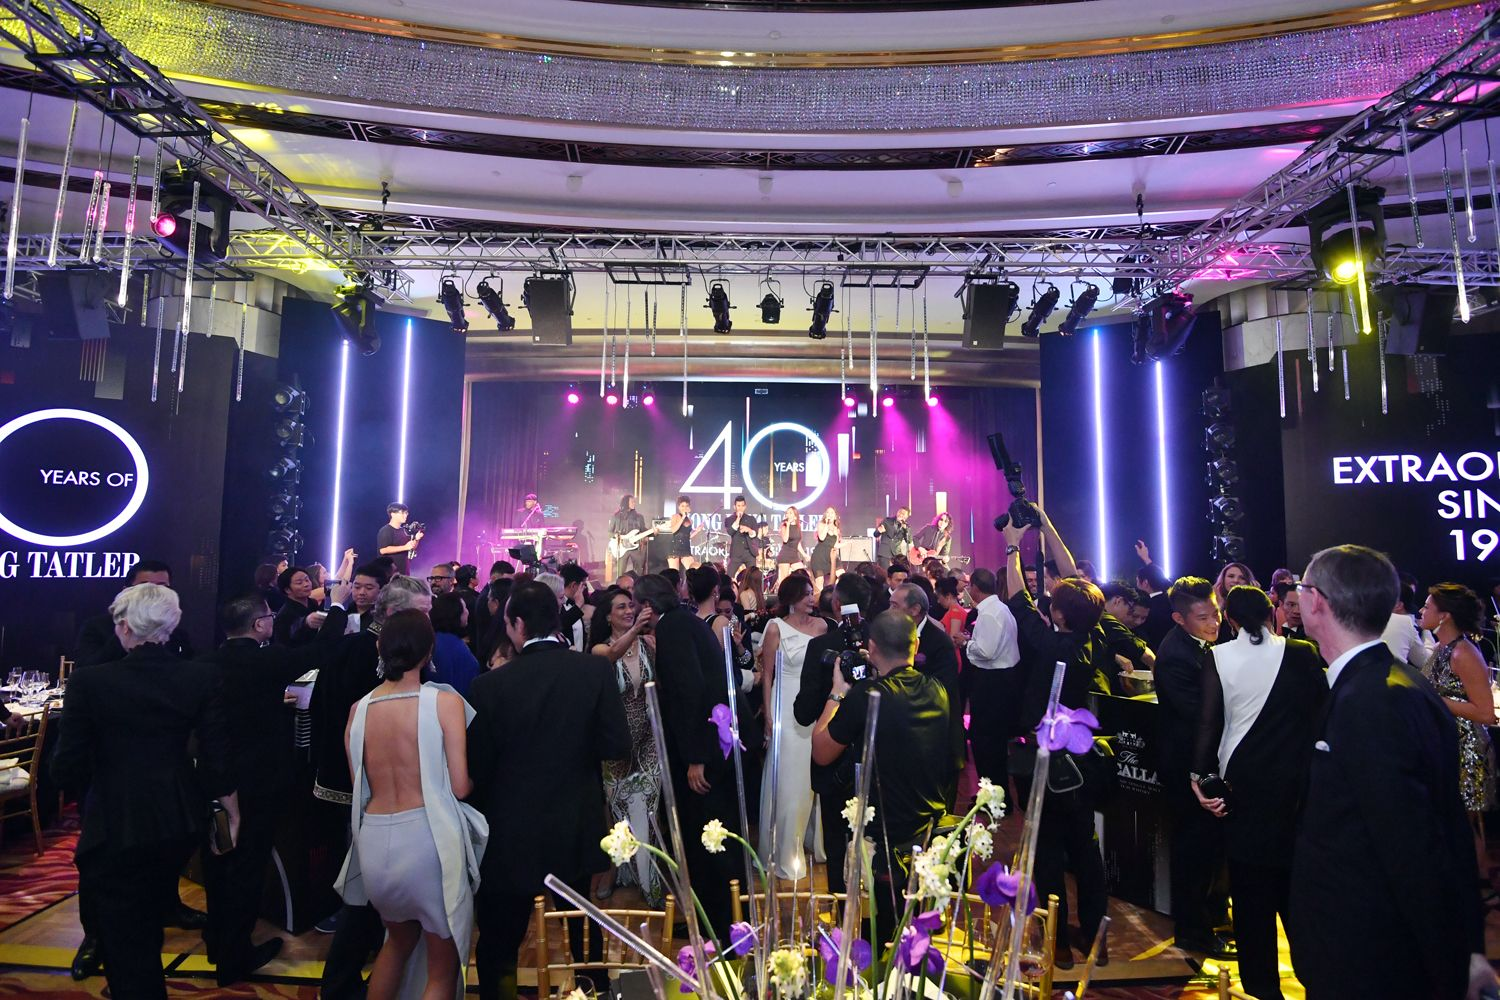 Best Of 2017: Top 10 Hong Kong Events Of The Year